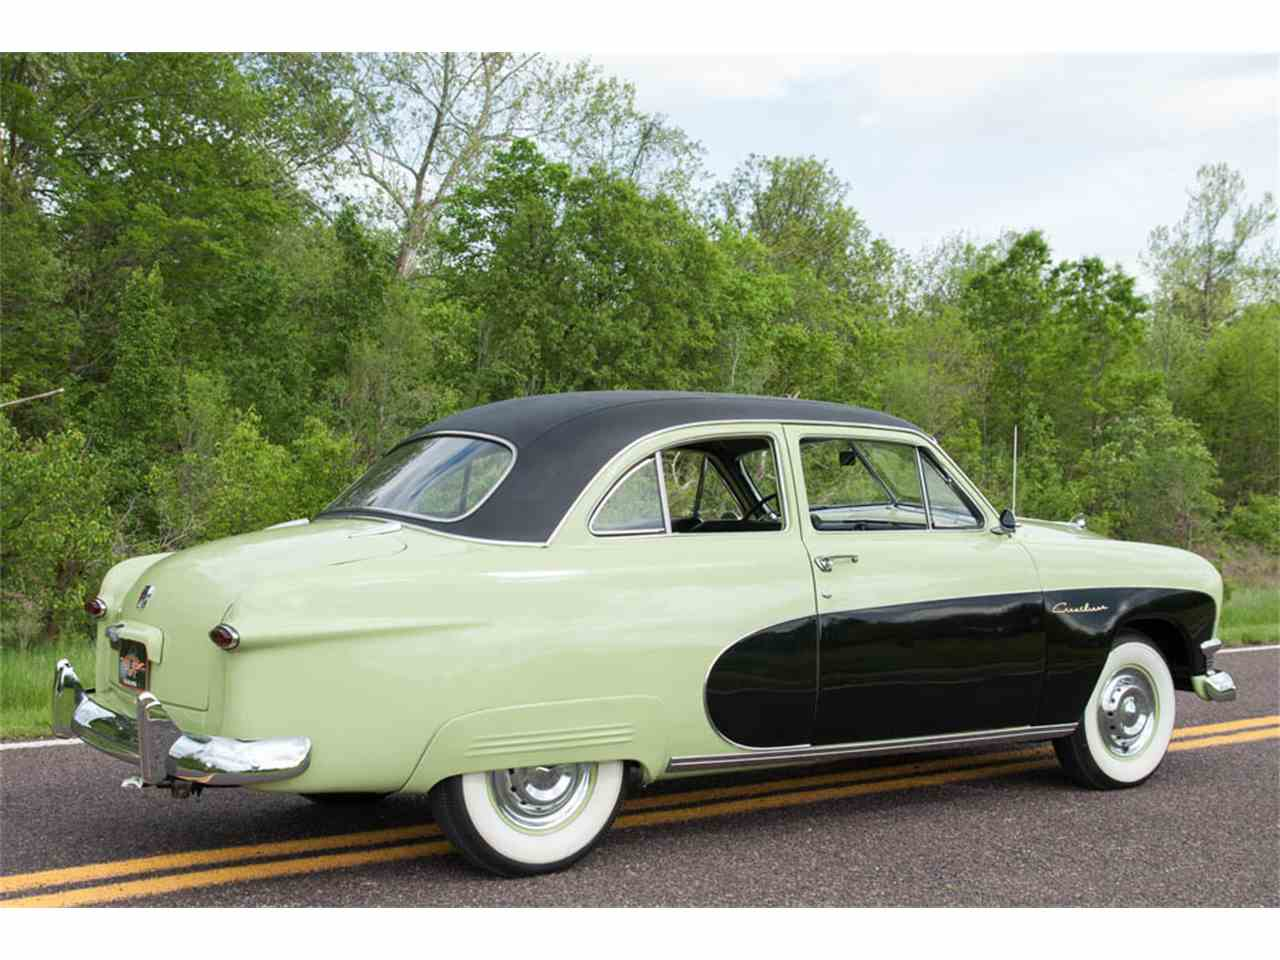 Large Picture of Classic '50 Ford Crestliner Tudor Sedan - $27,900.00 Offered by MotoeXotica Classic Cars - HO6T